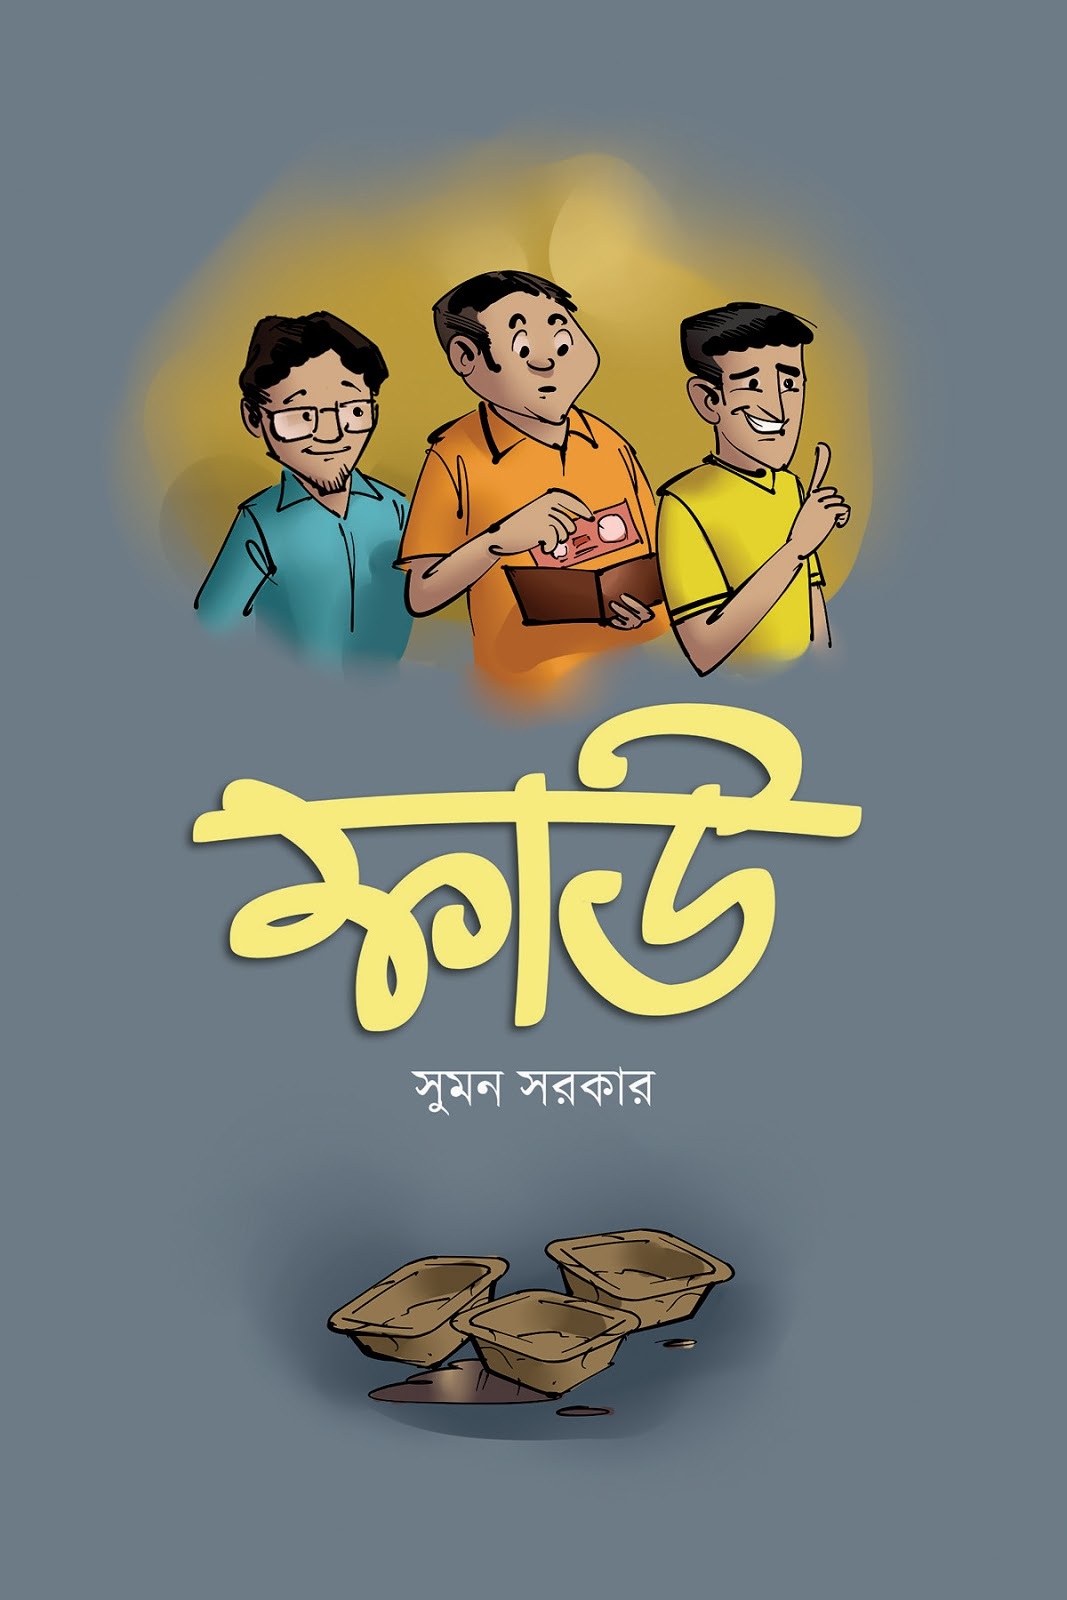 suman sarkar fau funny storybook illustration young men eating free fuchka